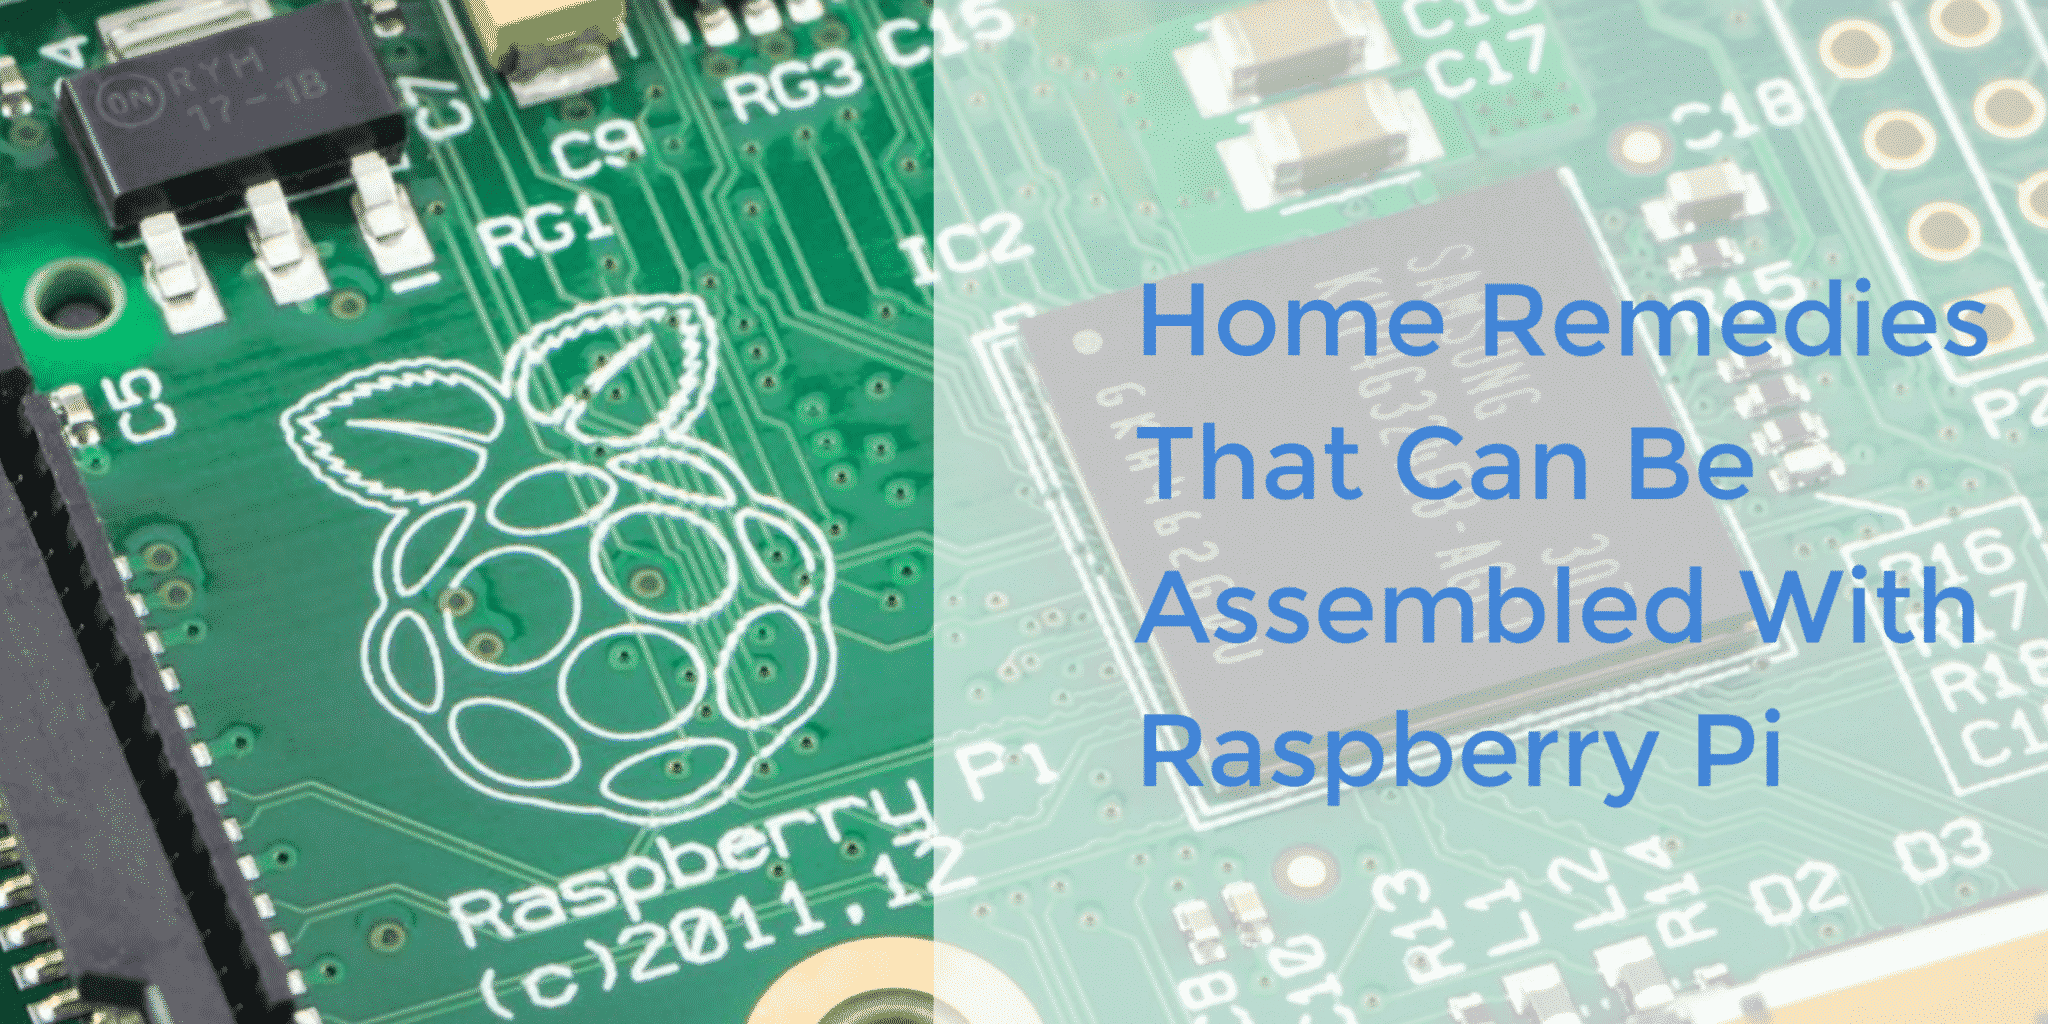 Home Remedies That Can Be Assembled With Raspberry Pi